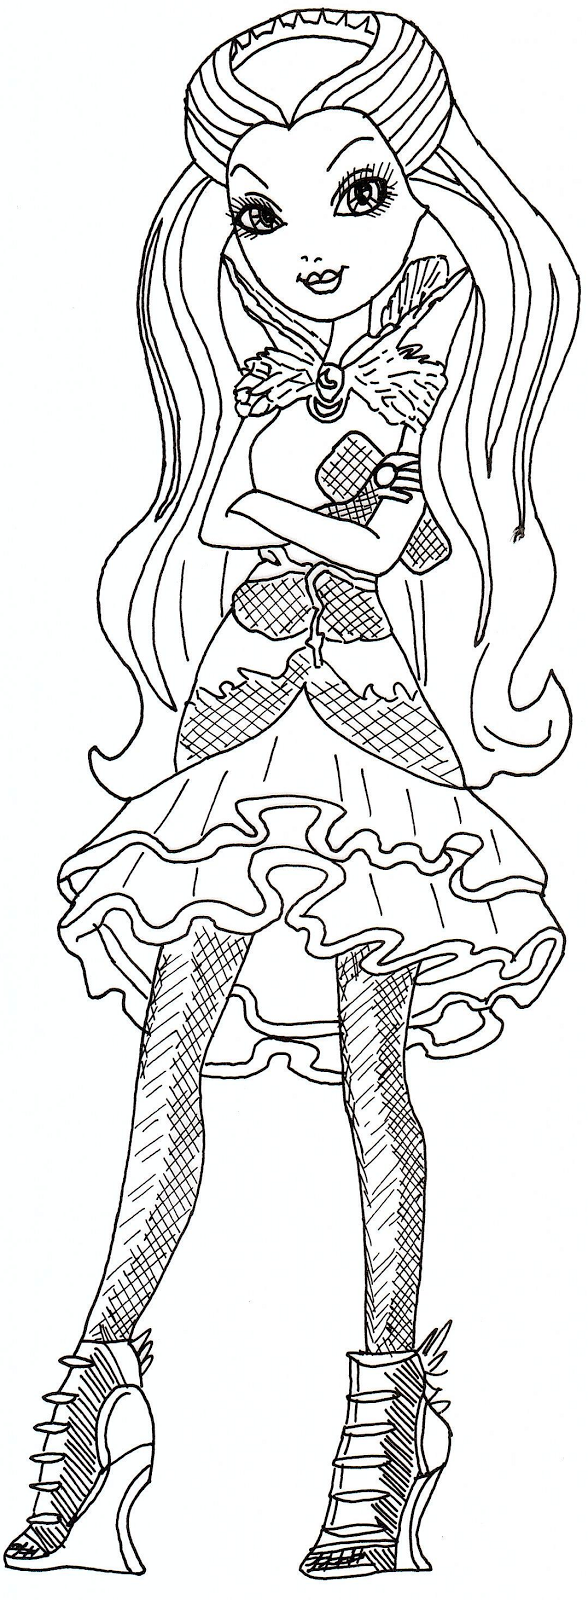 Ever after high coloring pictures - Free Printable Ever After High Coloring Pages Raven Queen Ever